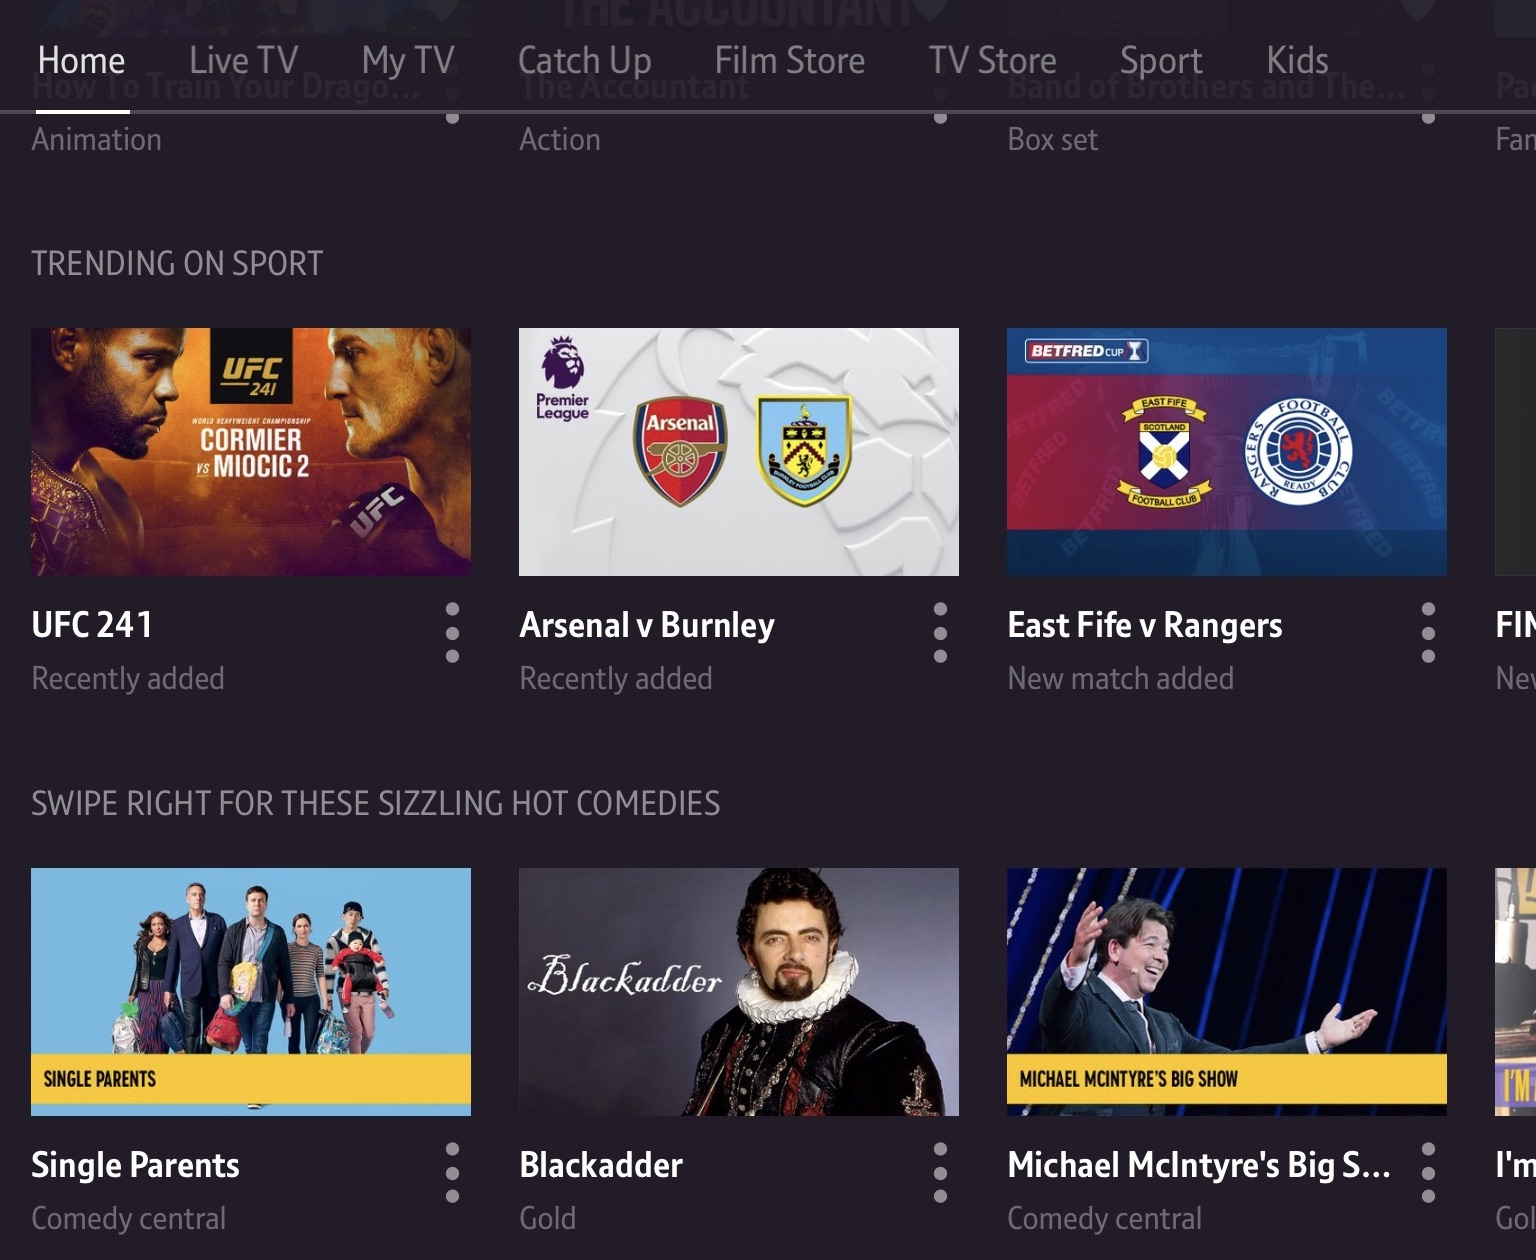 A screenshot from the BT TV interface. This shows three thumbnails for programmes trending under the category, sport.